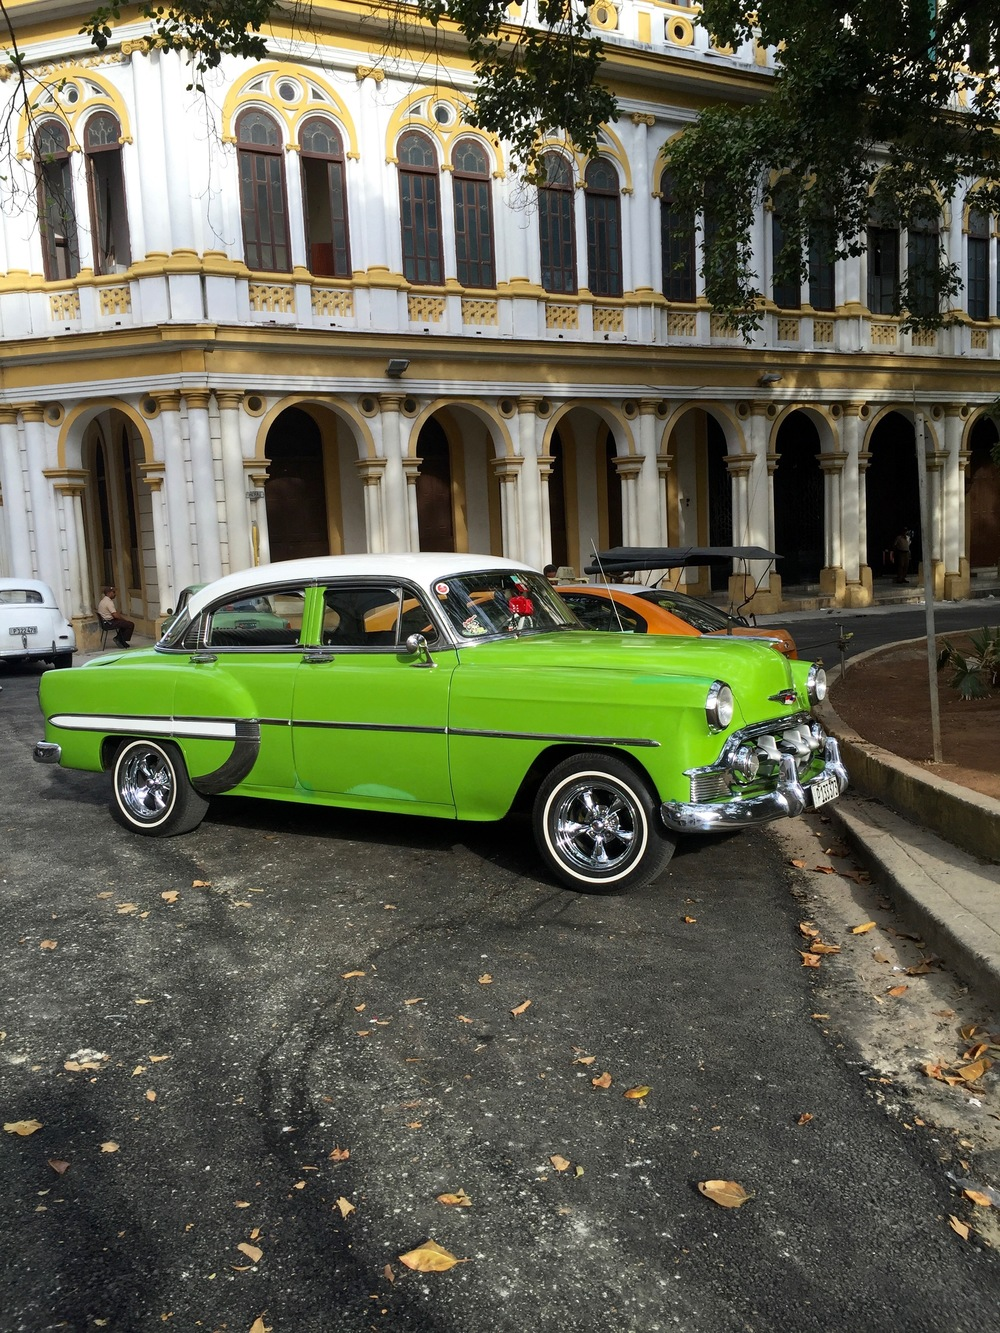 Cuba was a car lover's dream -- a 1955 Chevy!